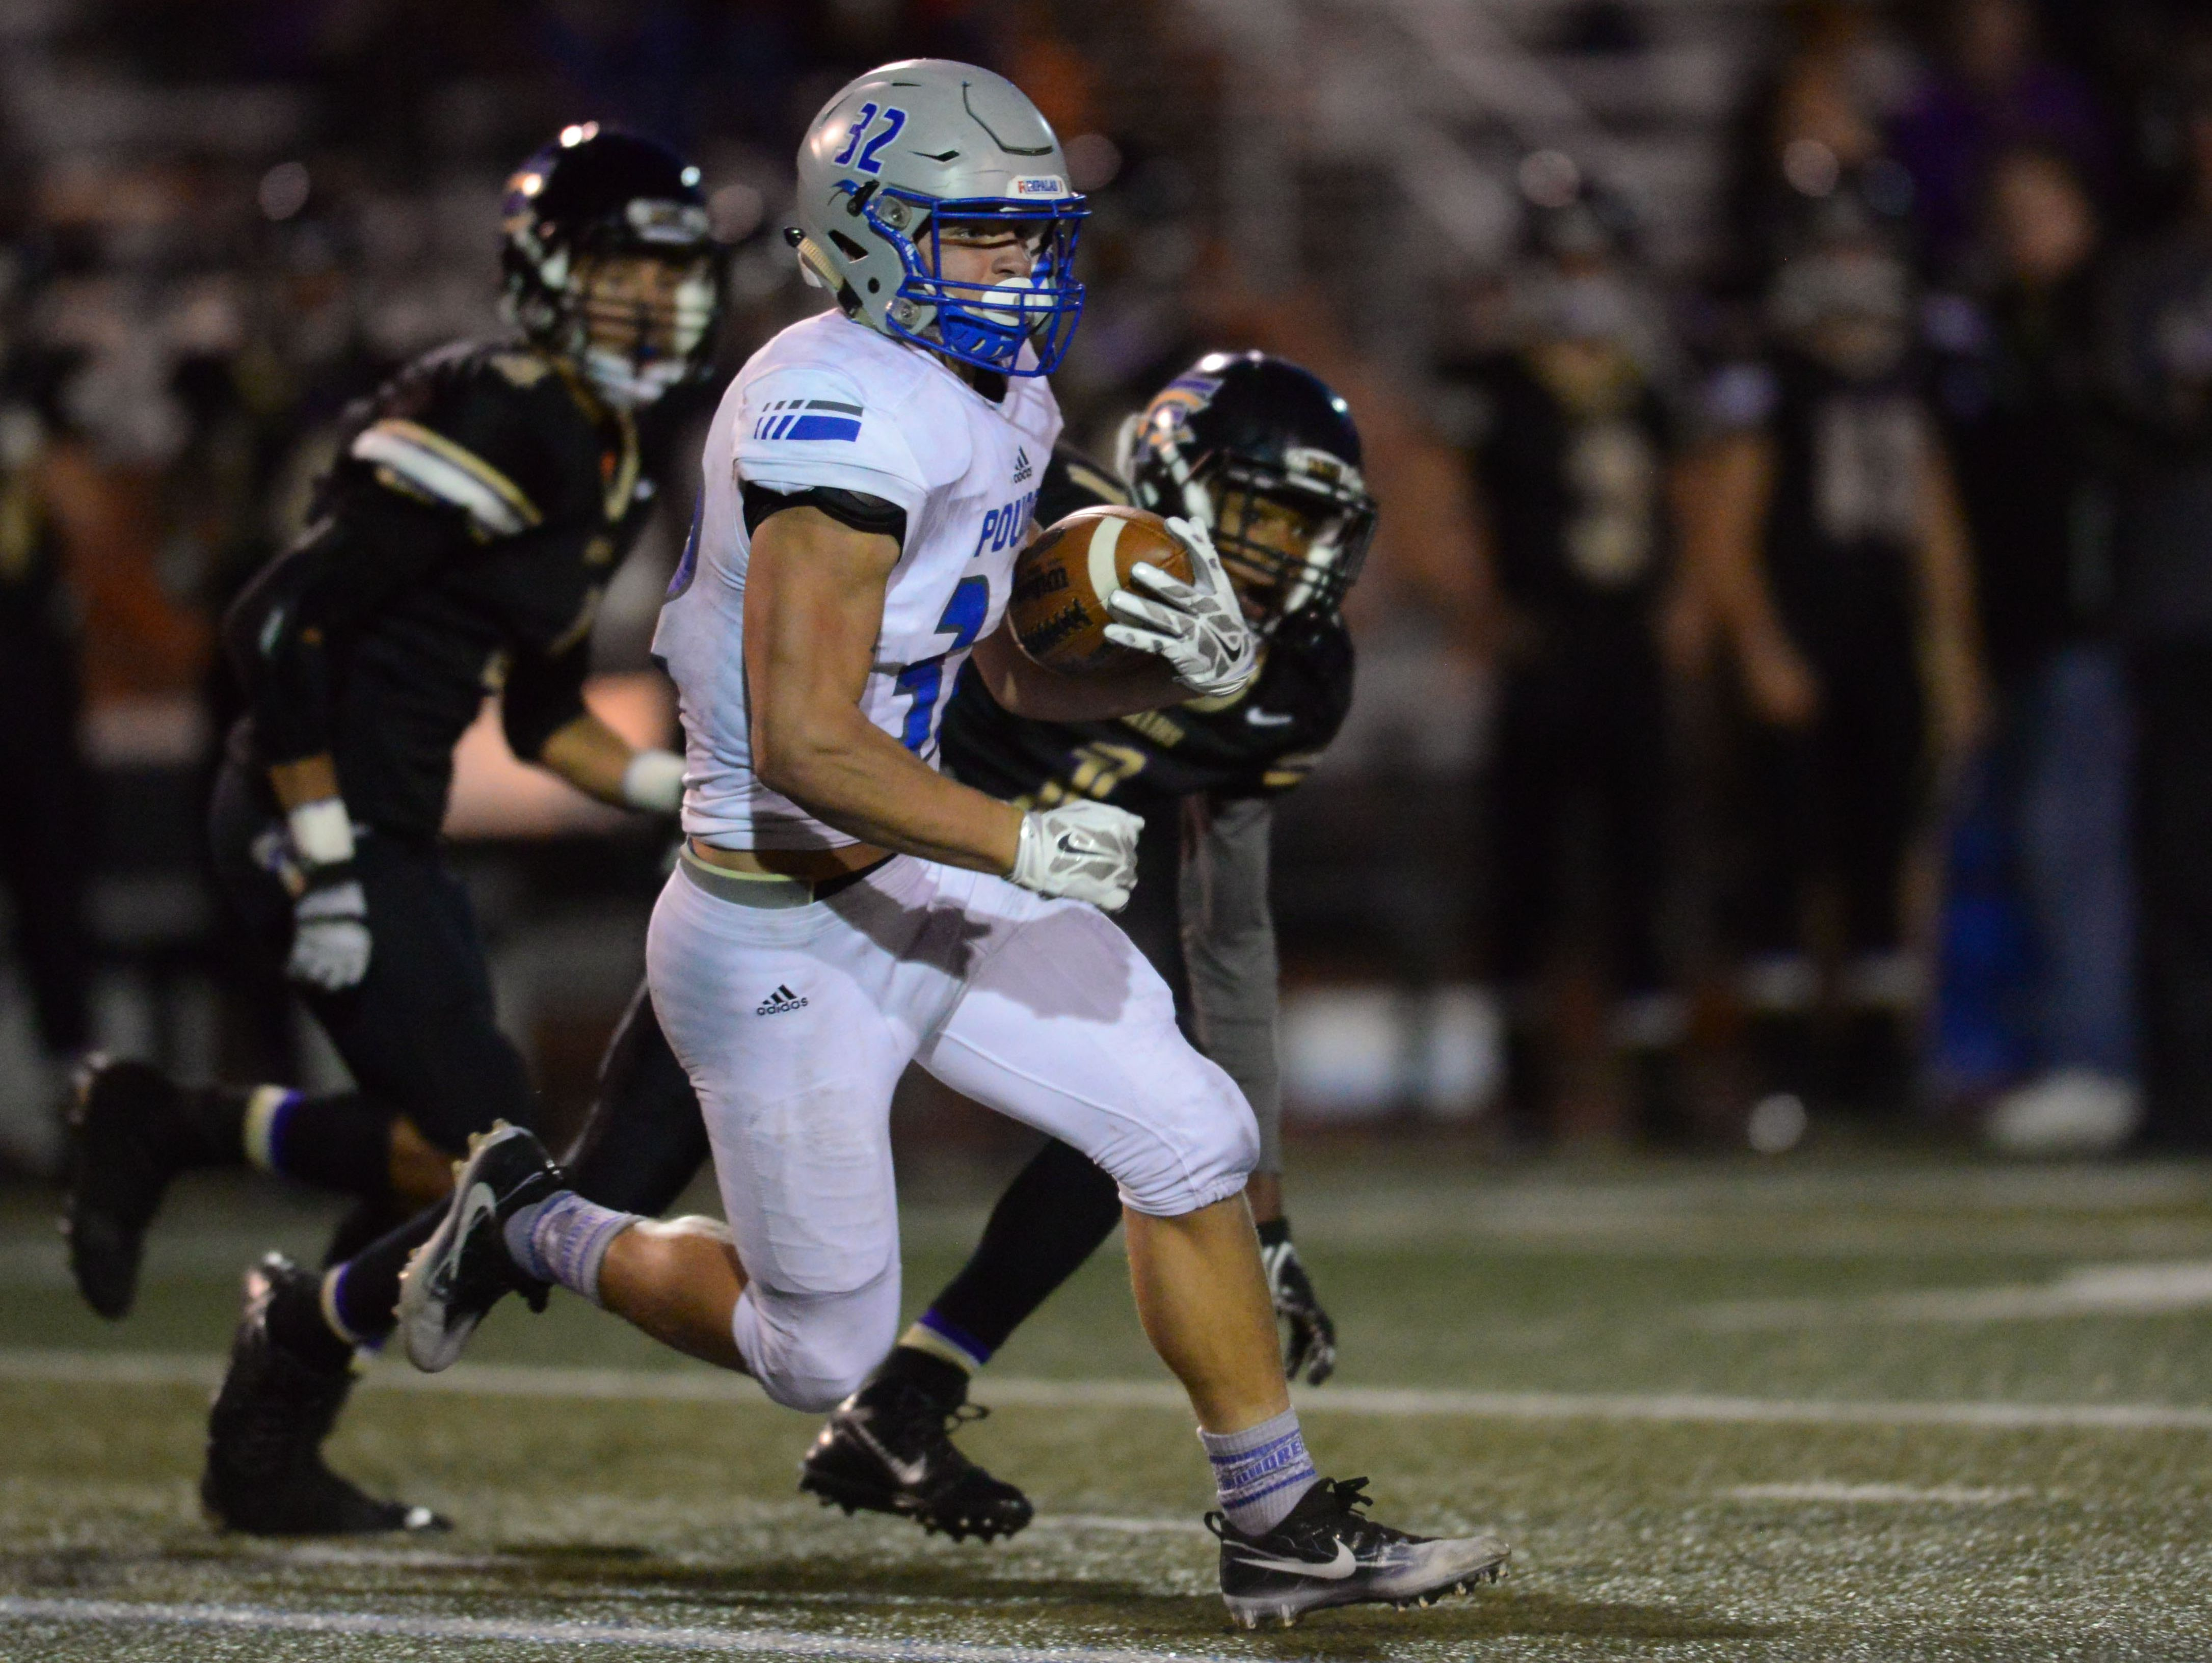 Poudre running back JT Erickson is sixth in Class 5A with 898 rushing yards.